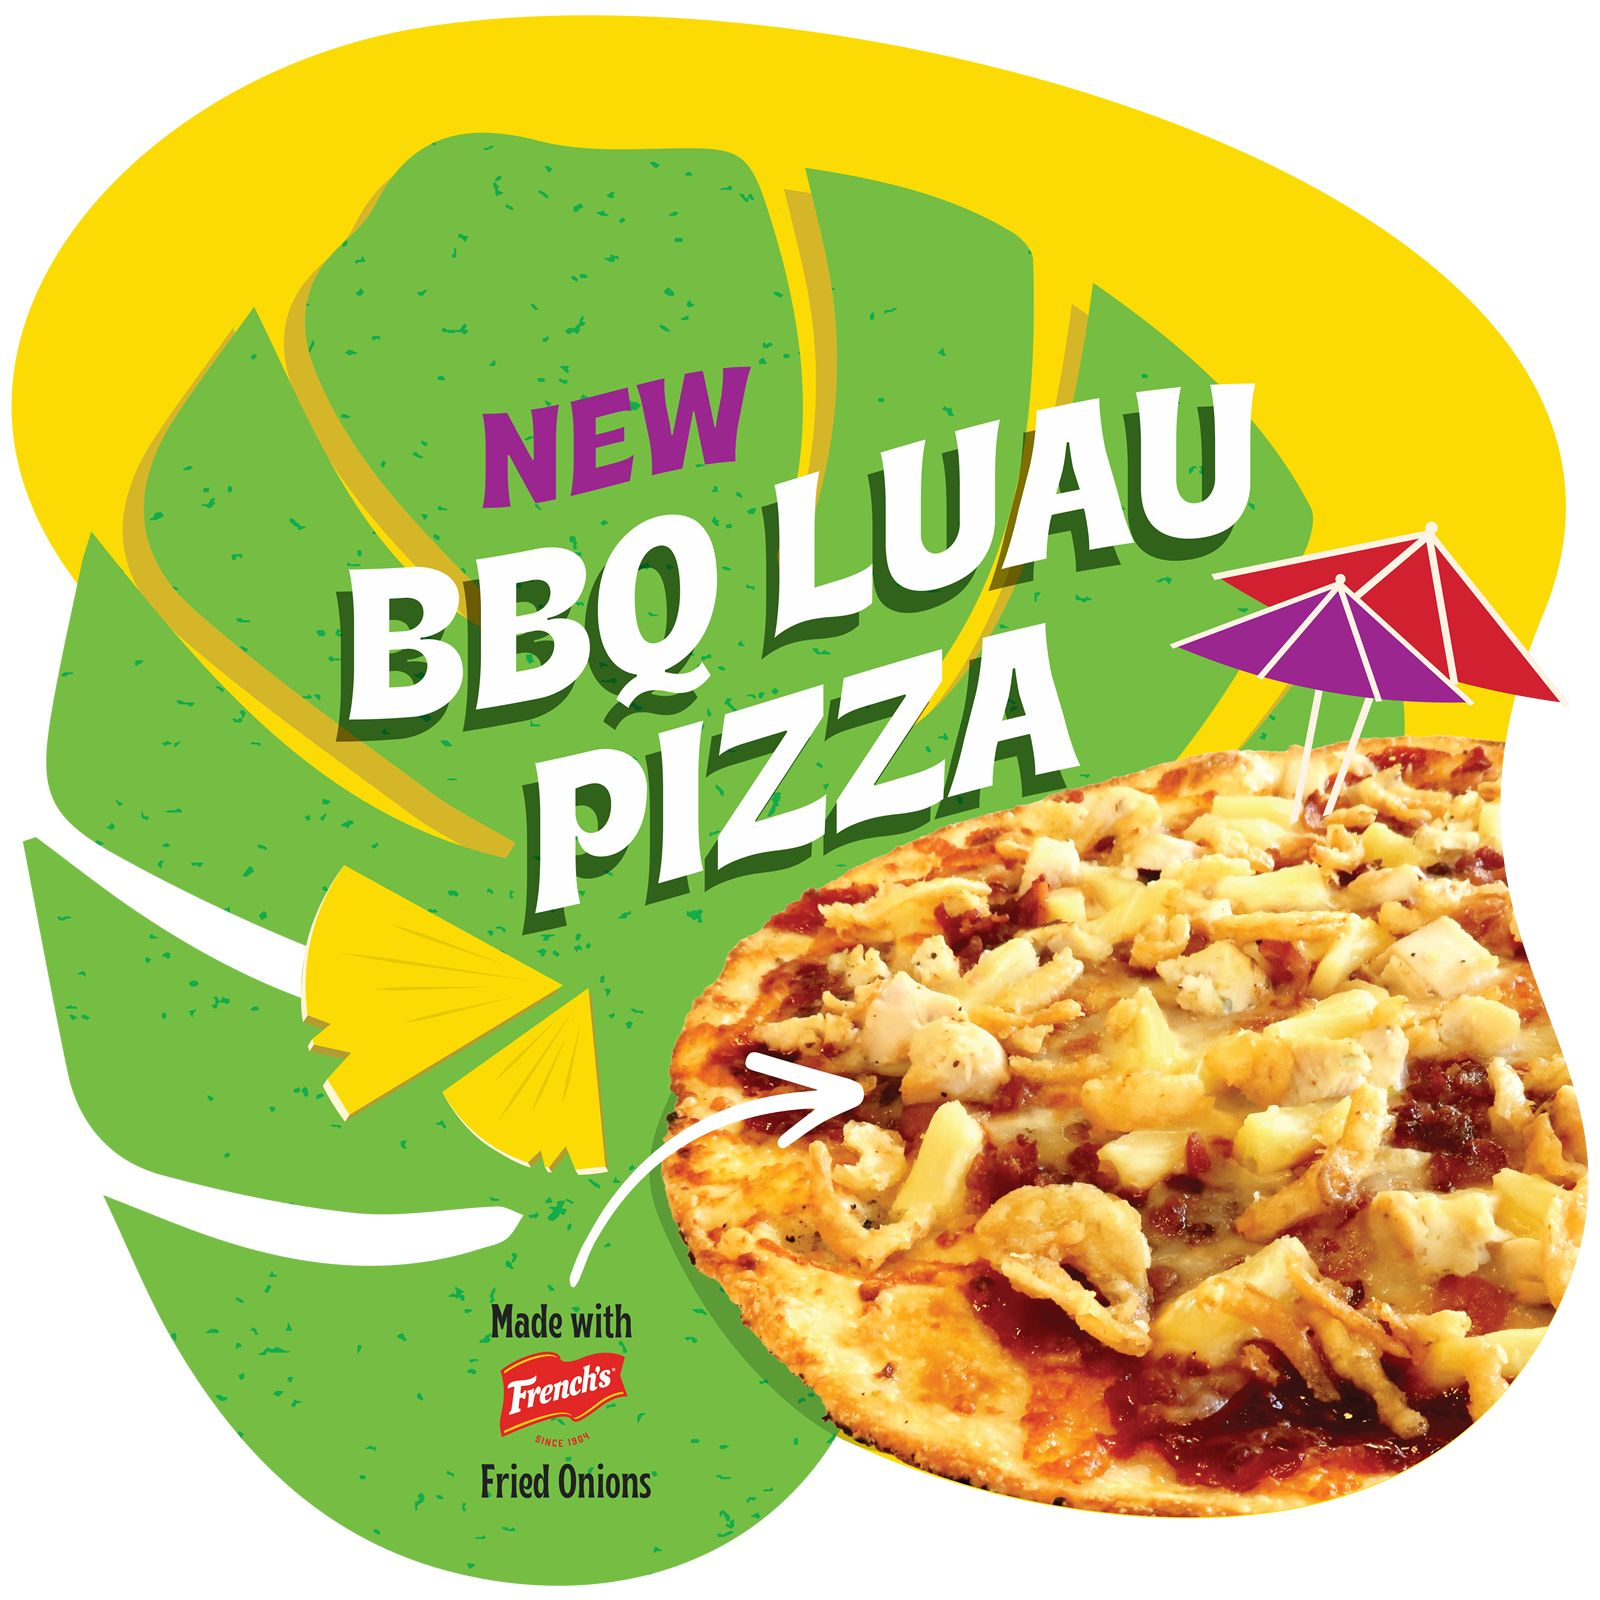 Pieology Releases Limited-Time BBQ Luau Pizza and Topping to Their Lineup